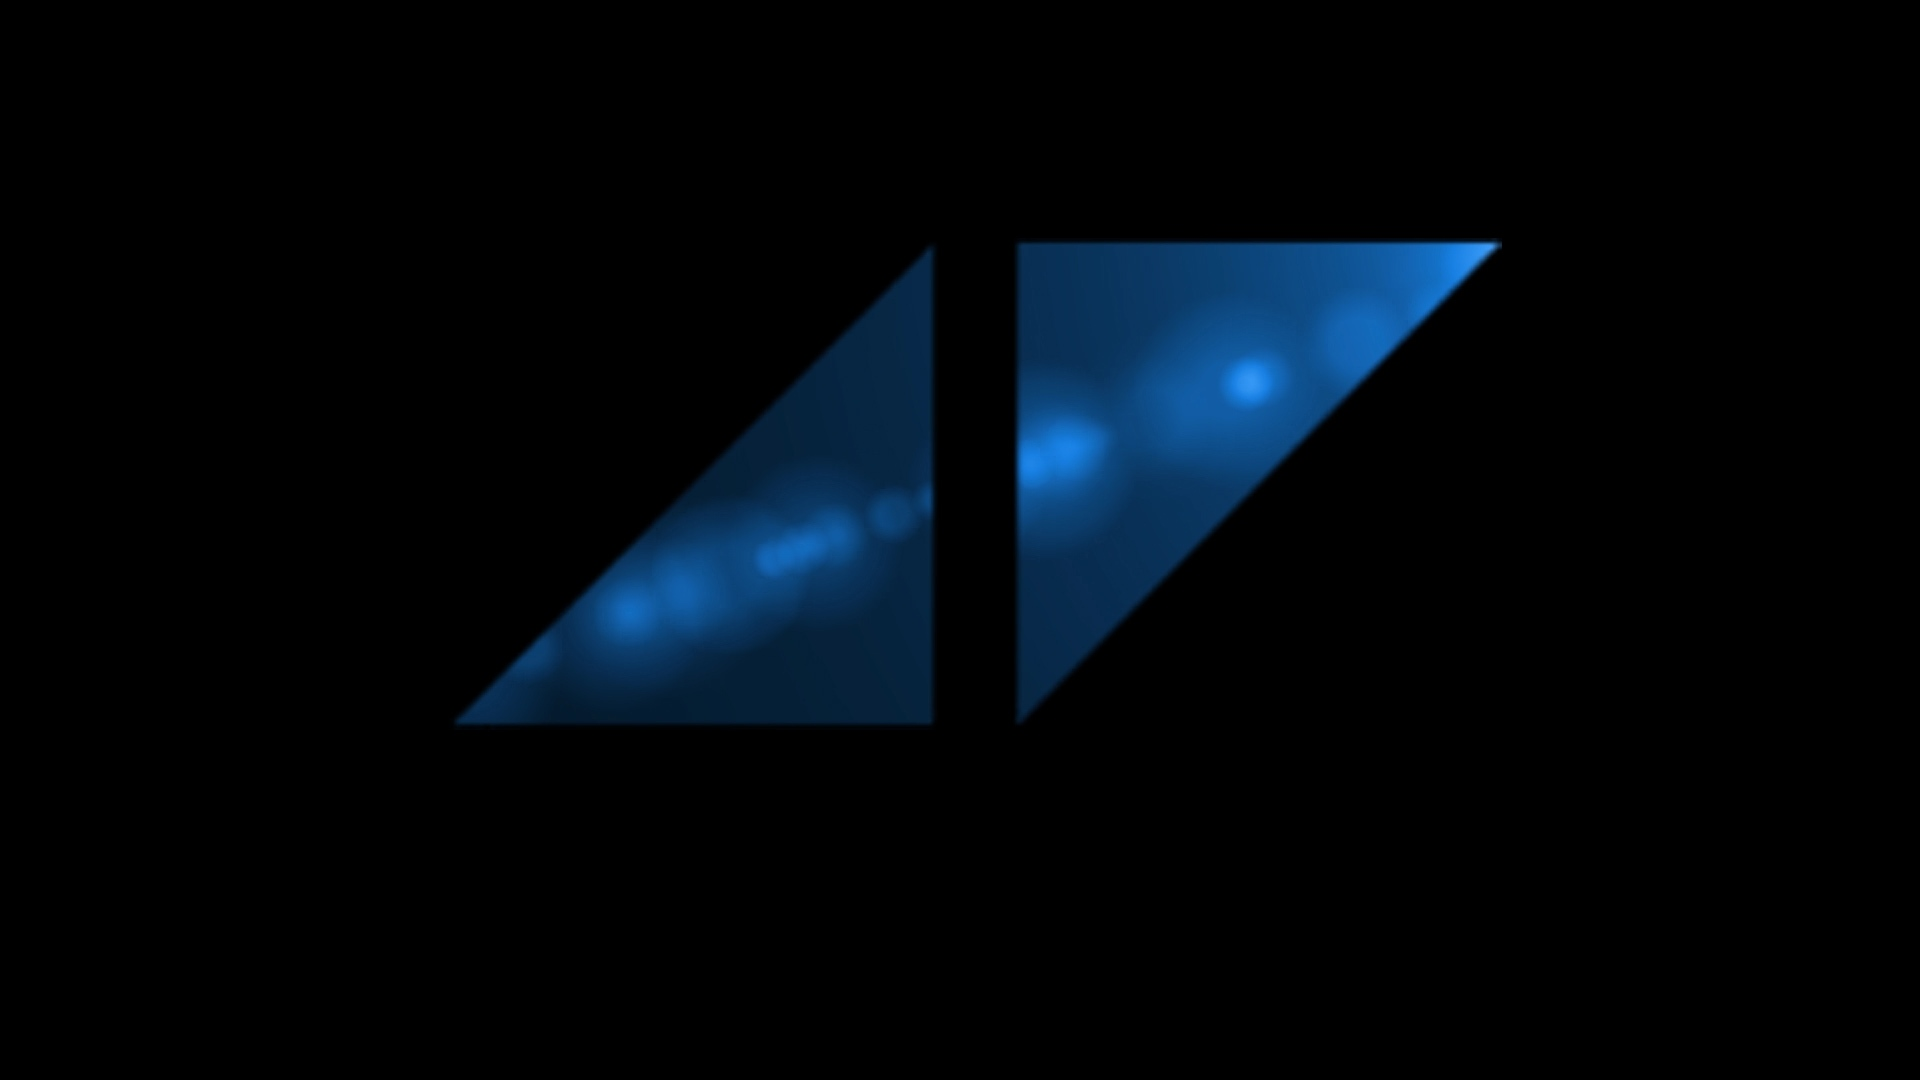 Avicii Logo Wallpaper Iphone